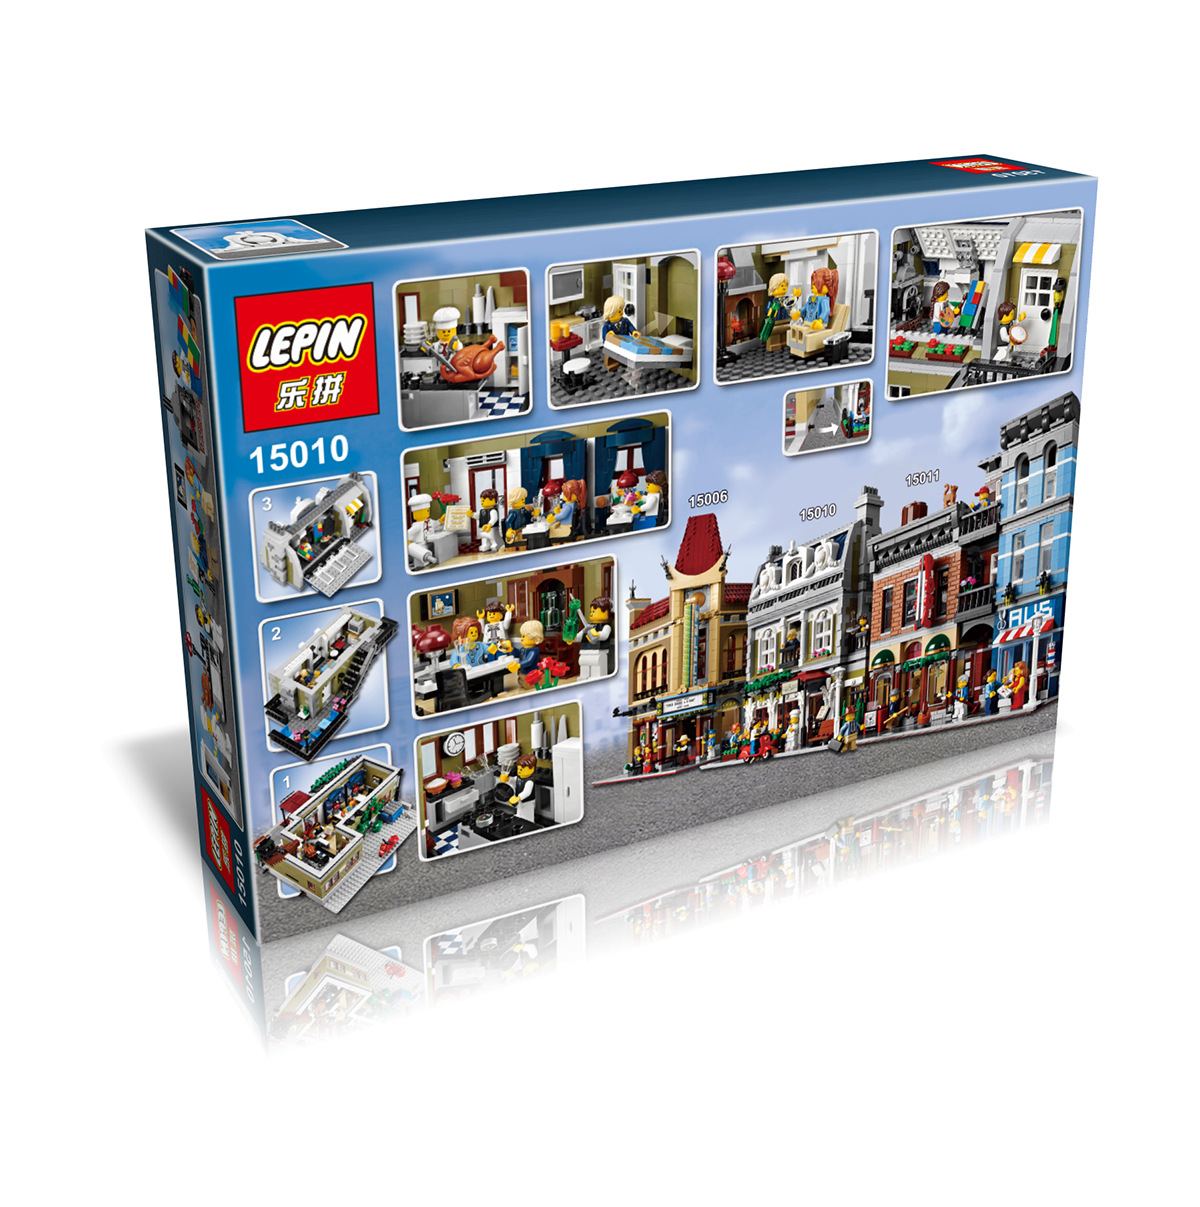 2418+ PCS Building Bricks, LP 15010 Building Blocks Creator 10243 Parisian Restaurant.